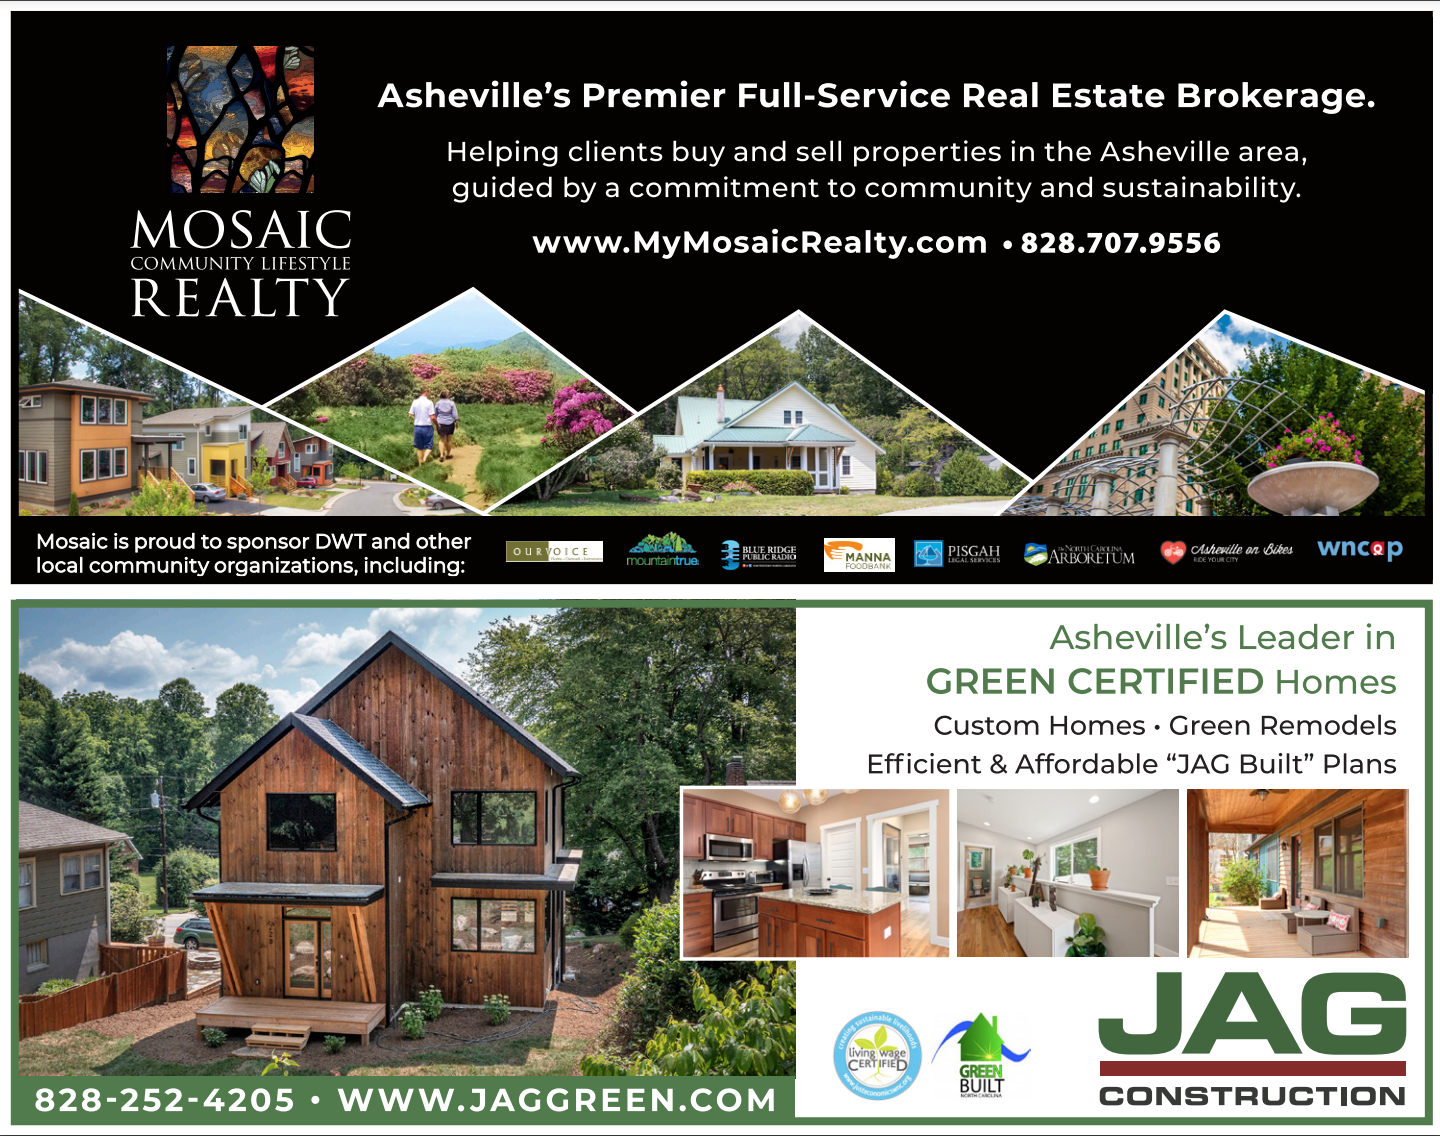 Mosaic Realty Gives Asheville